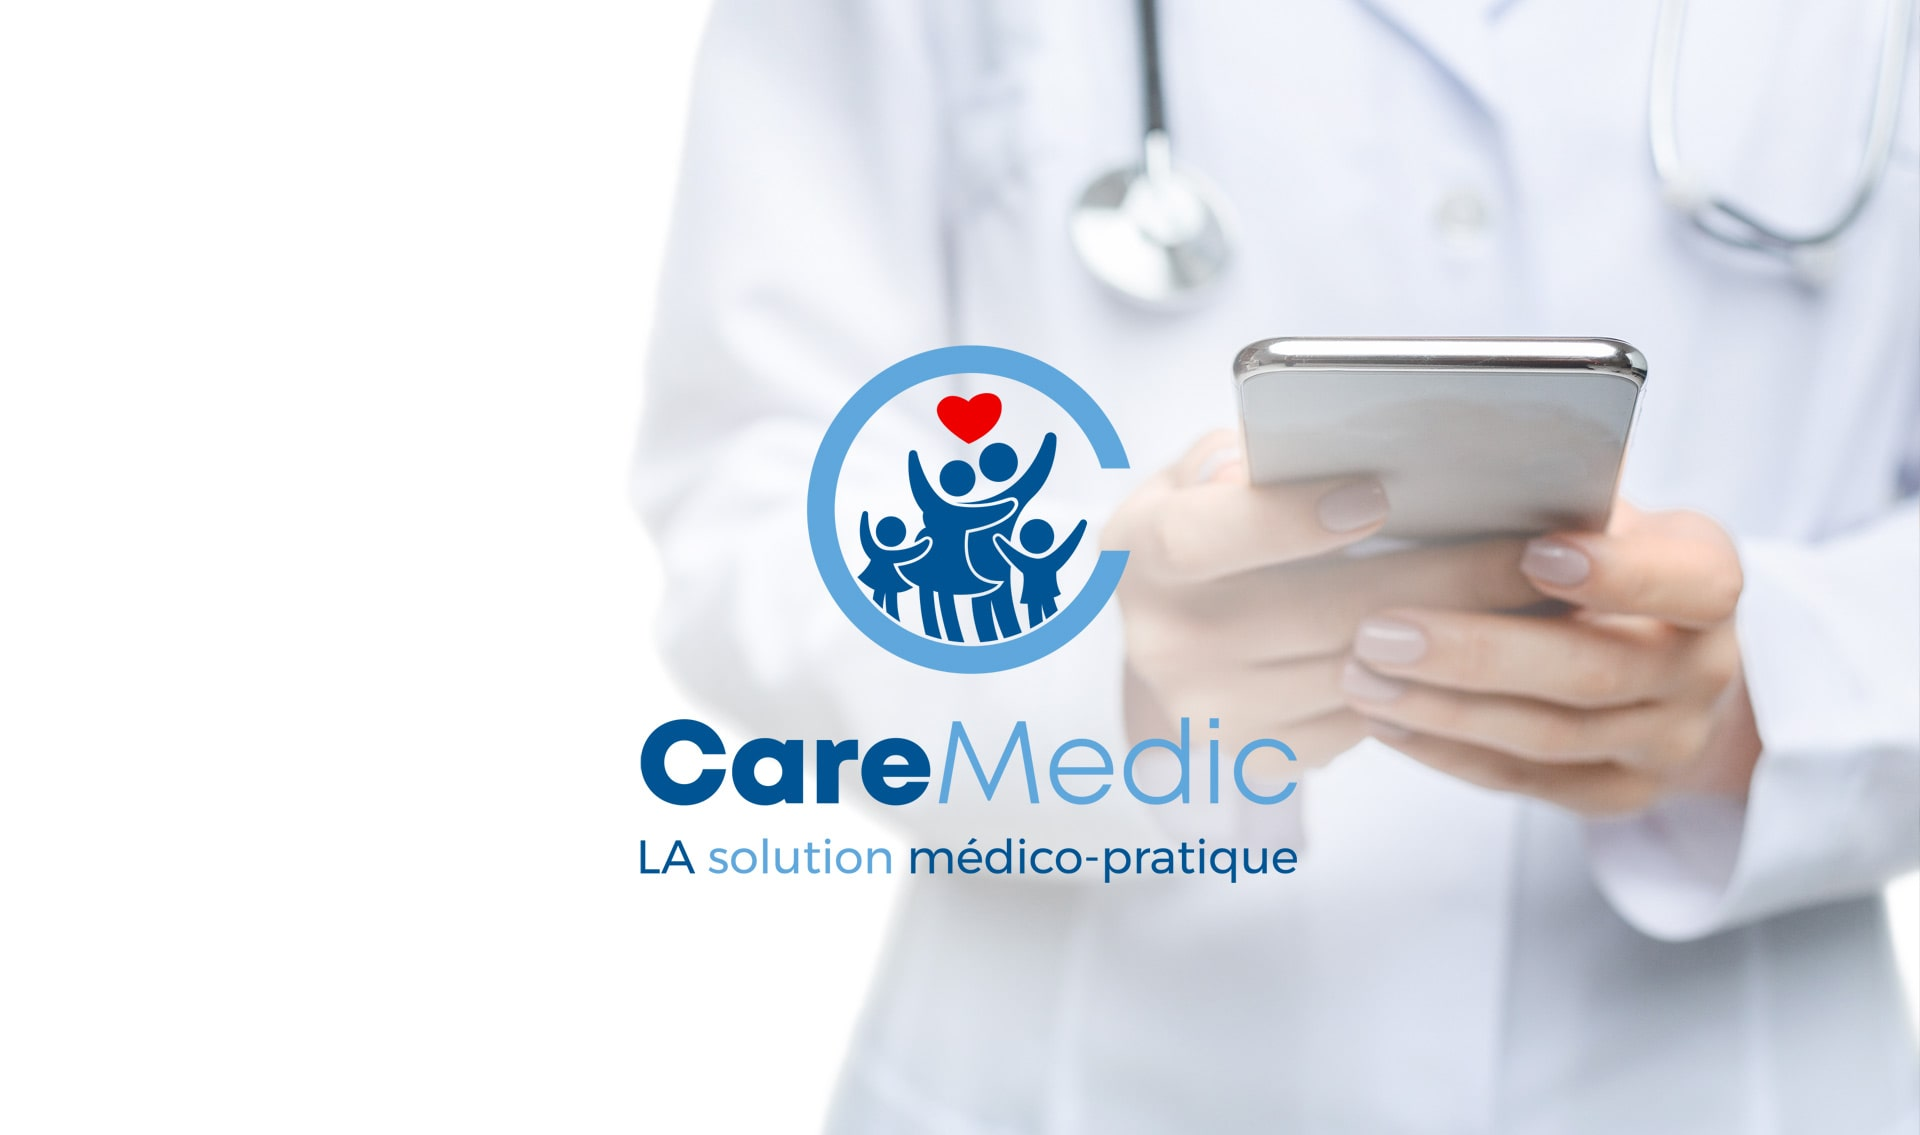 CareMedic la solution medico pratique medecin bas page M